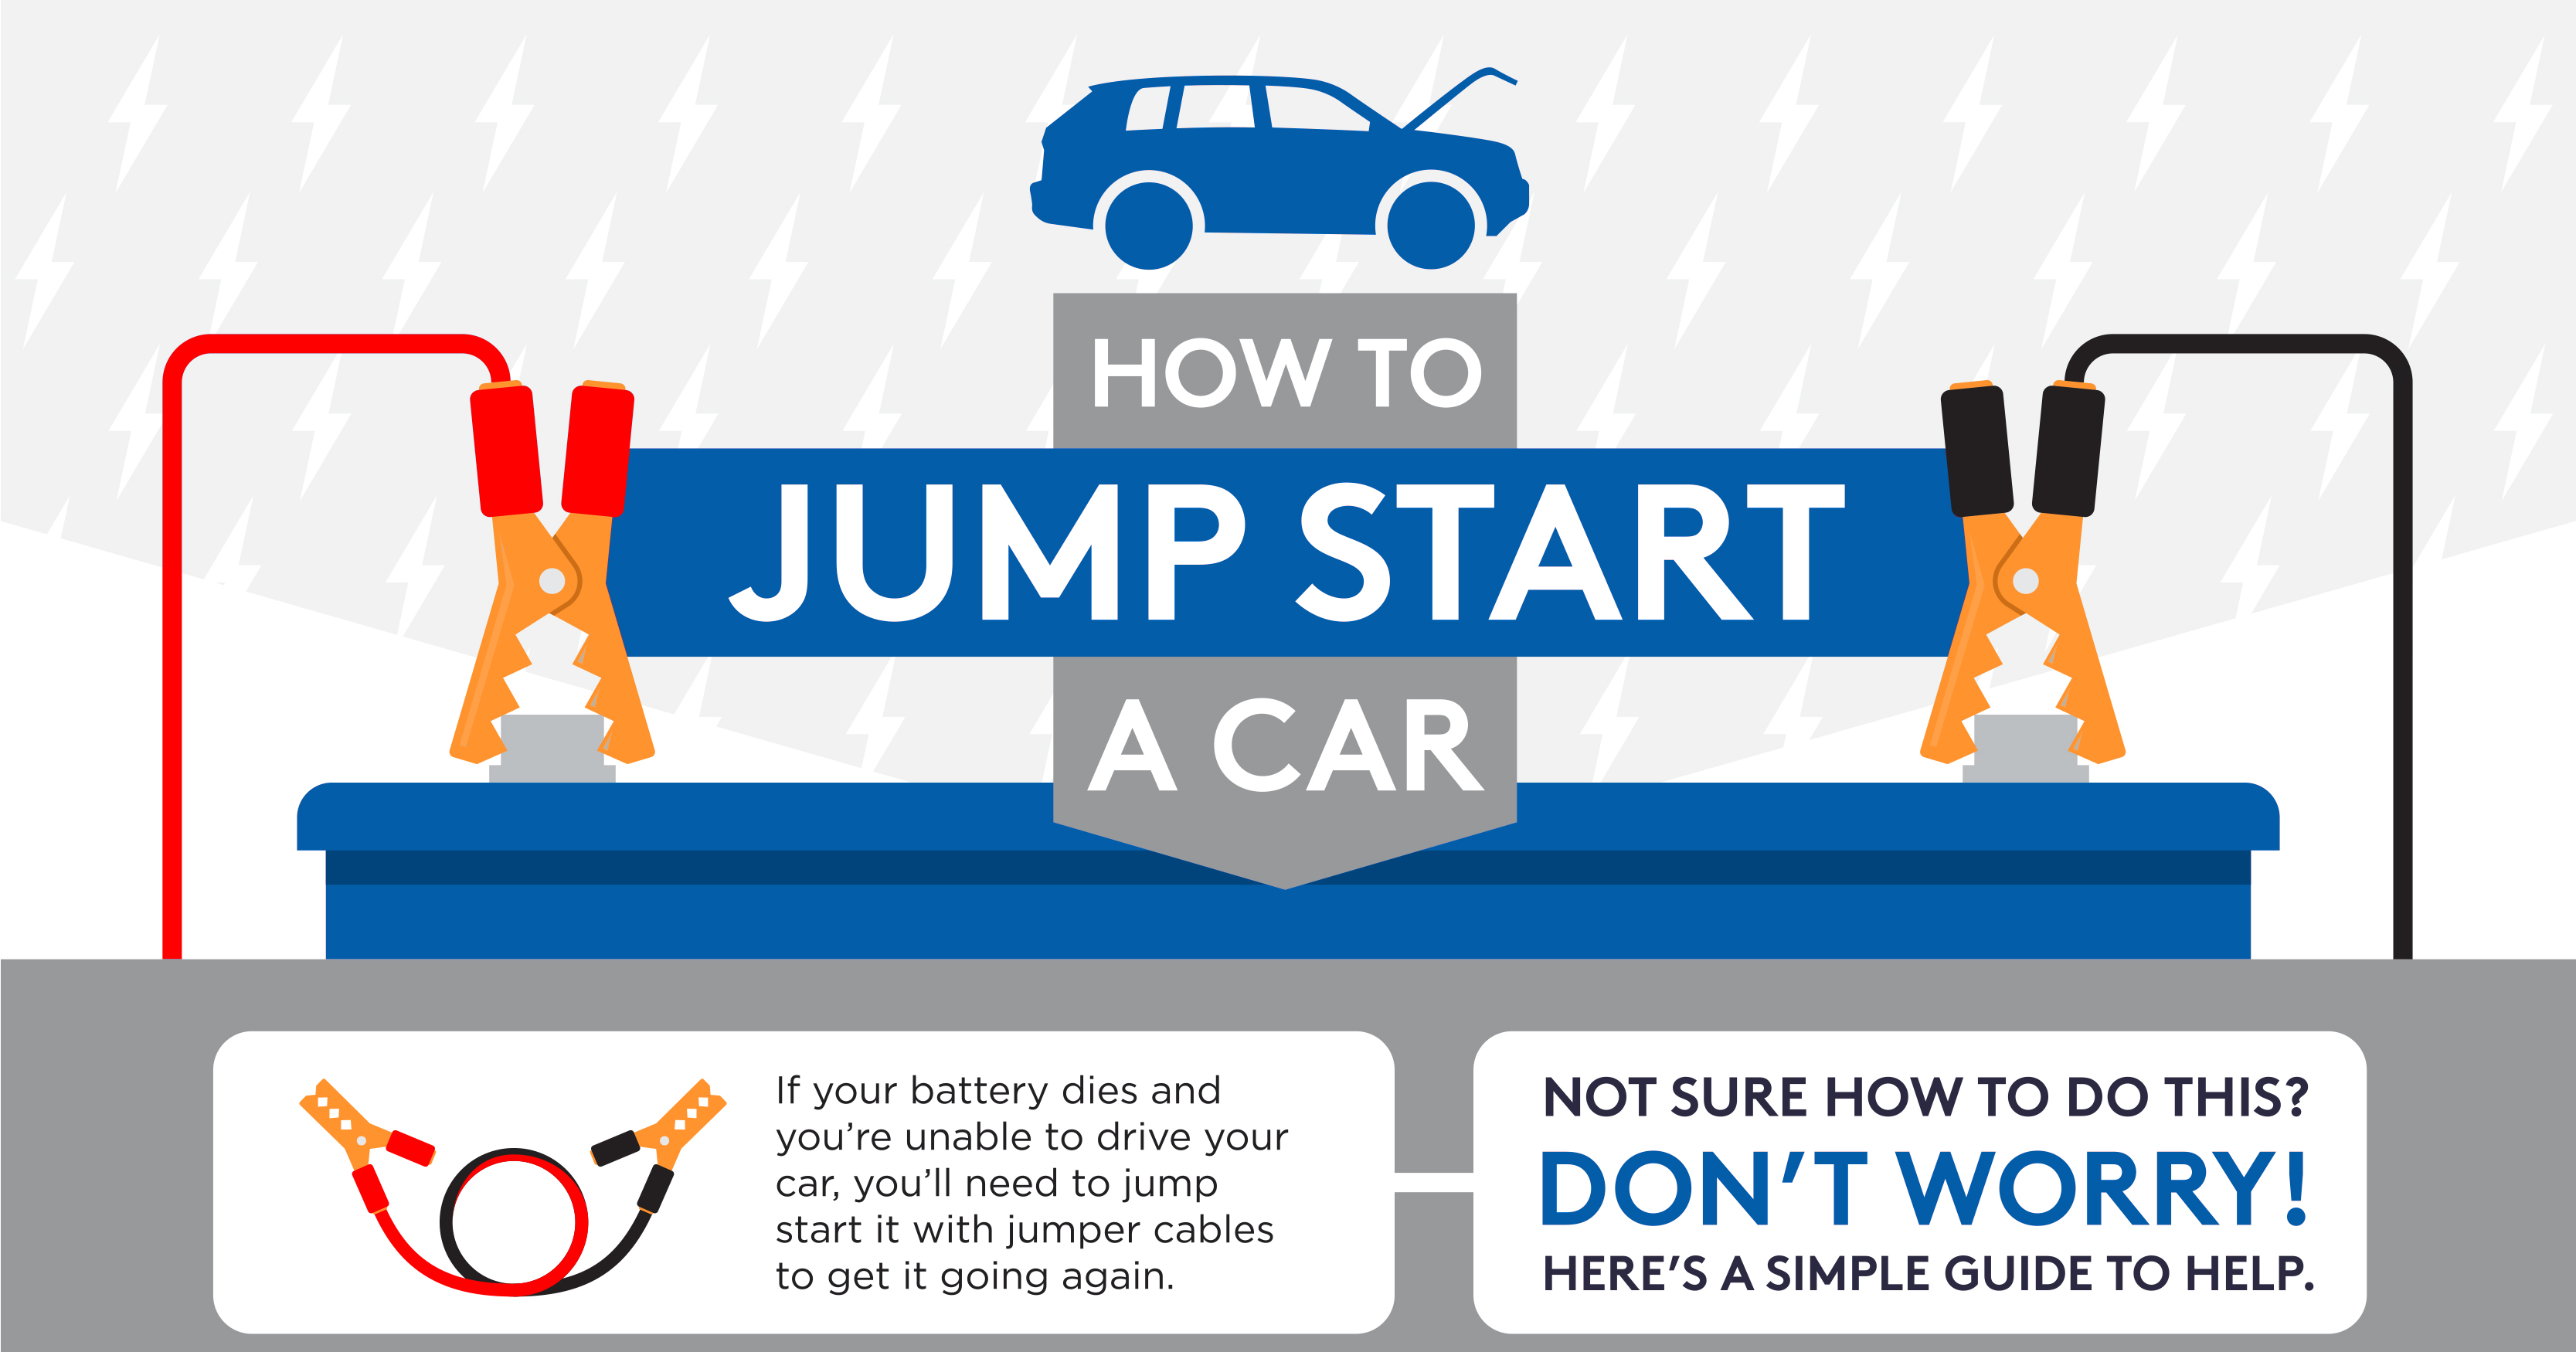 How To Jump Start A Car An Easy Guide